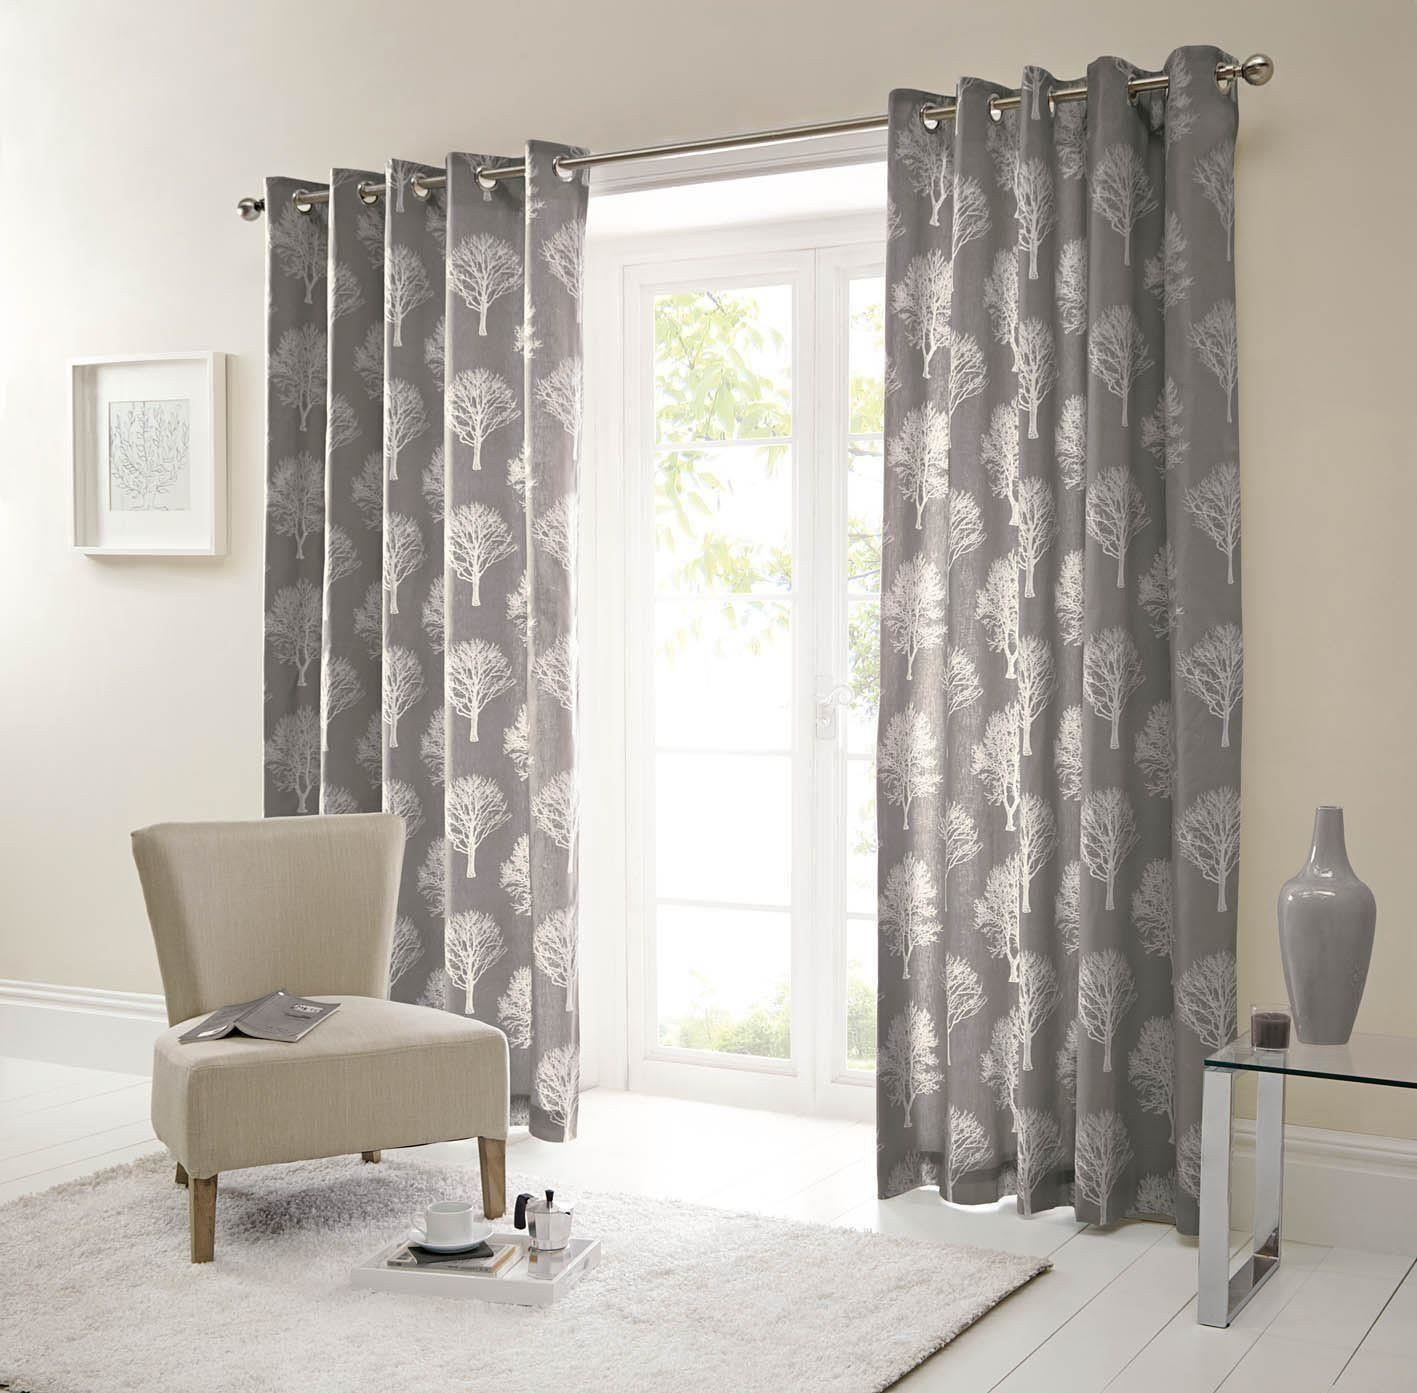 FOREST TREES CHARCOAL CHARCOAL CHARCOAL Weiß 90X90 RING TOP LINED CURTAINS  SEERTDNALDOOW CUR b8b852